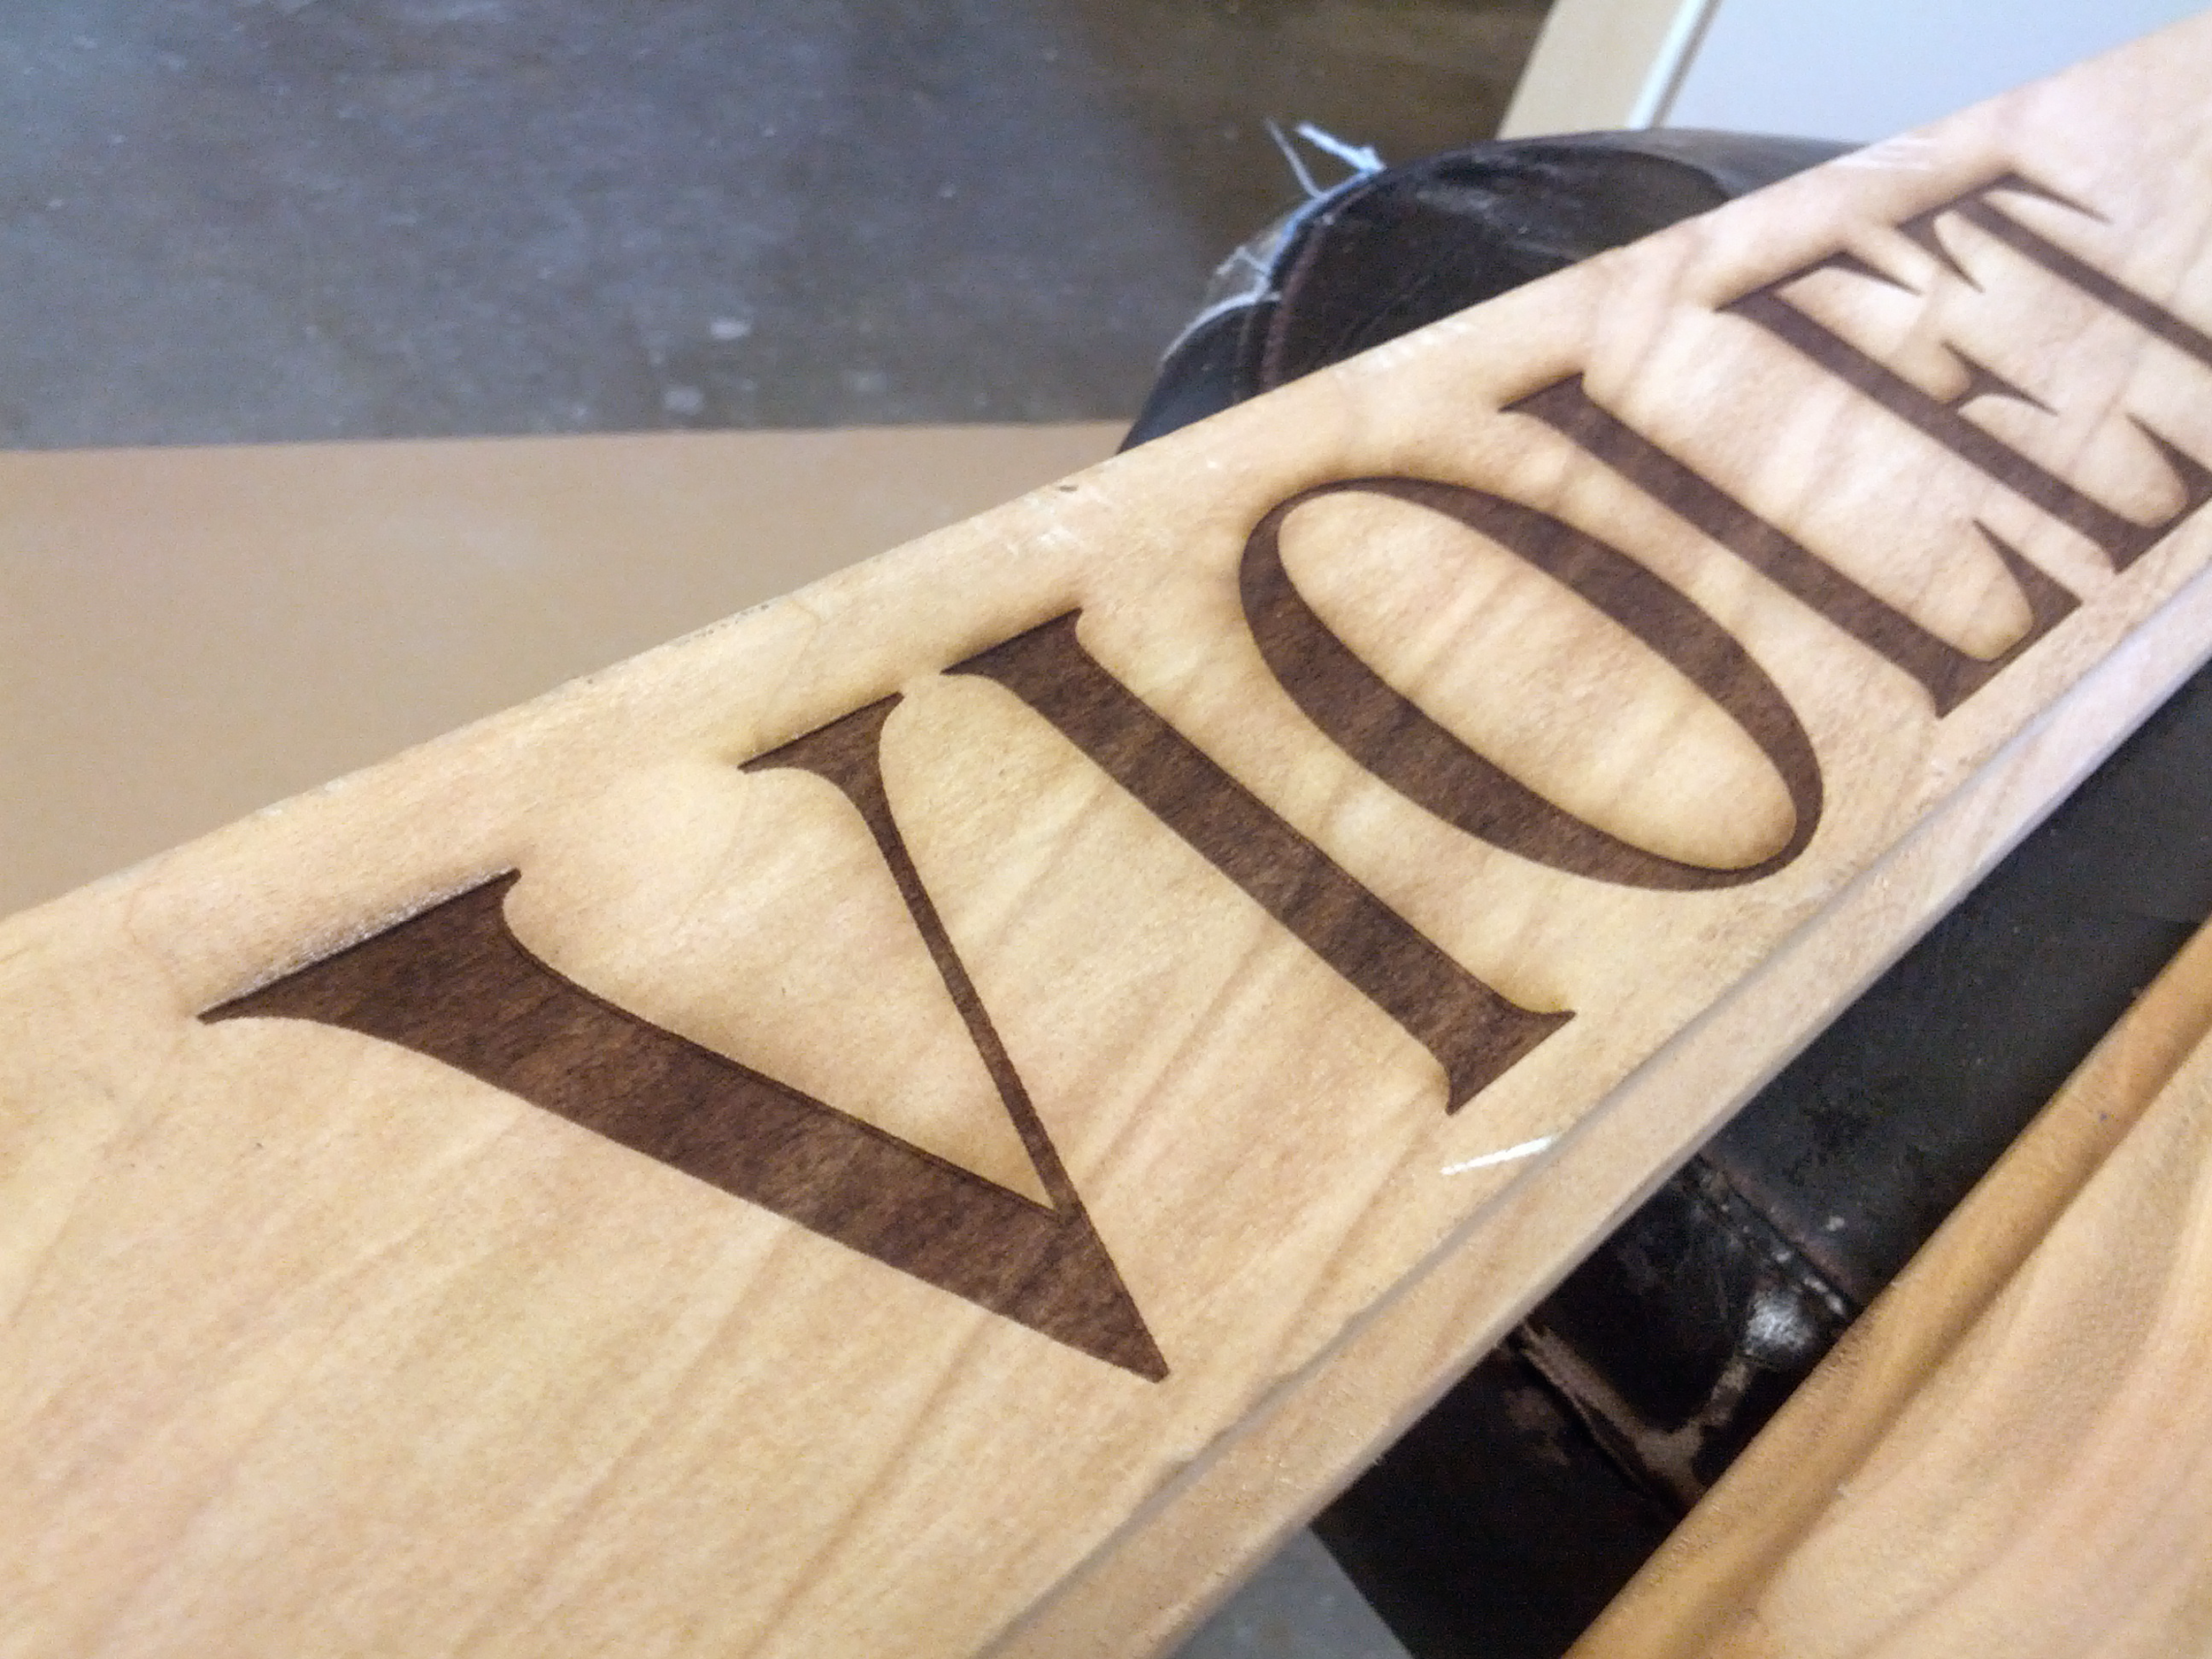 Copy of Experimenting with laser etching